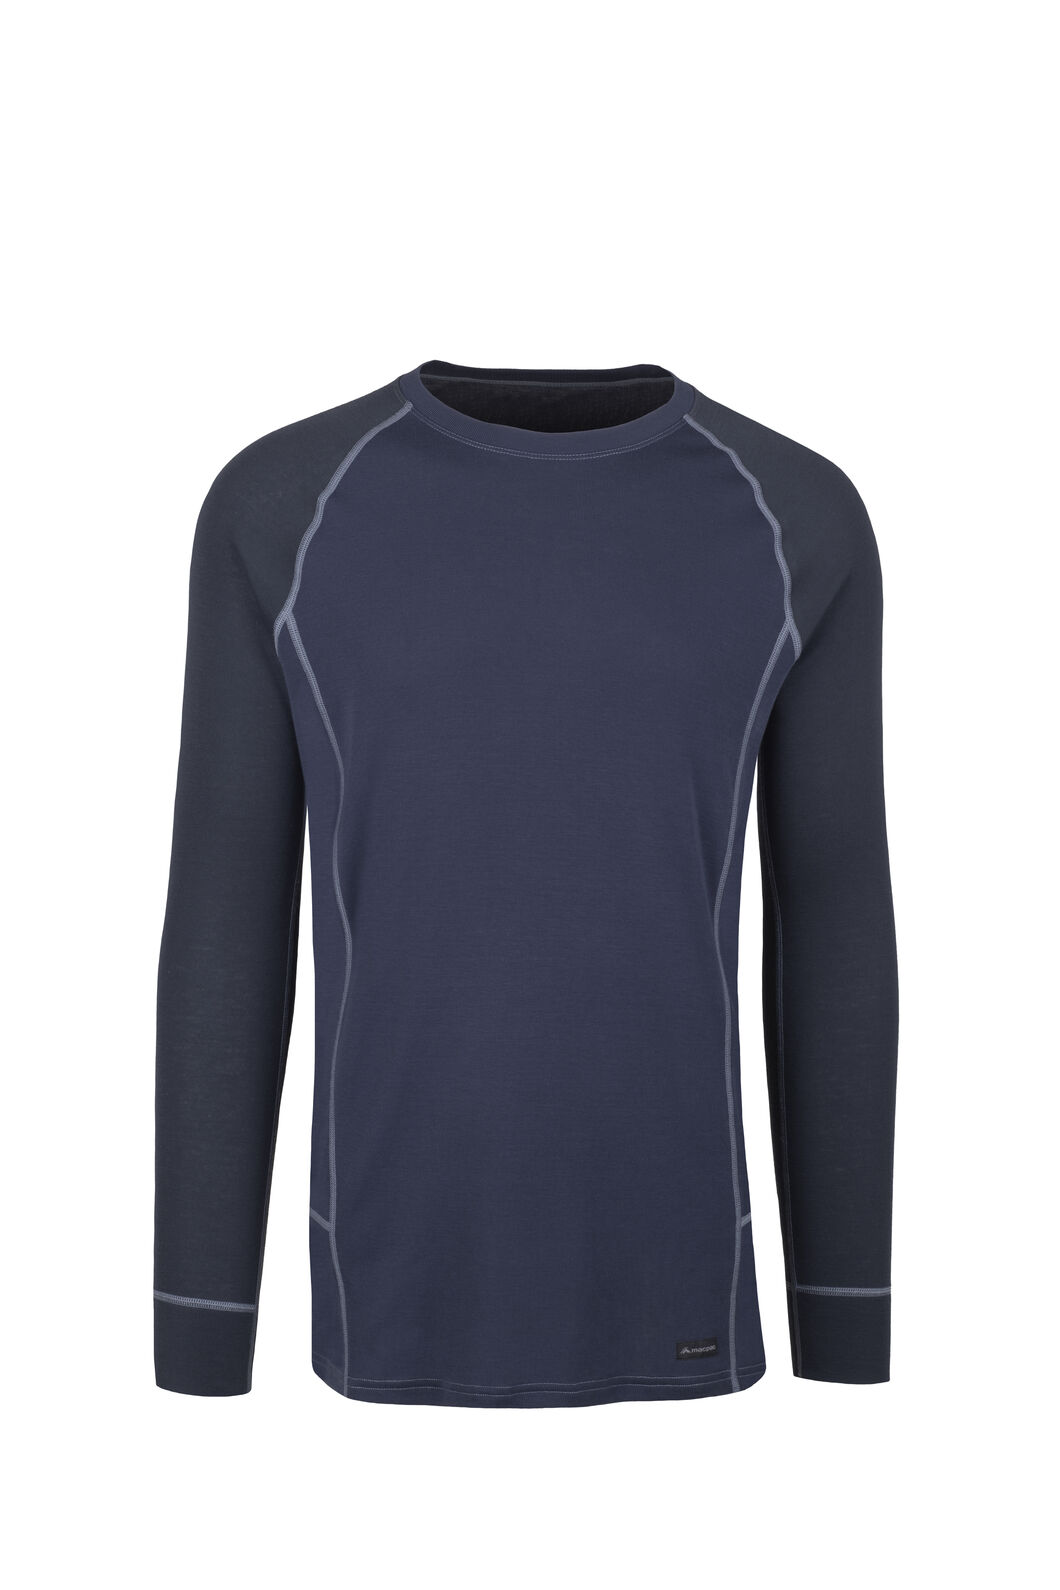 Macpac Geothermal Long Sleeve Top — Men's, Salute/Mood Indigo, hi-res